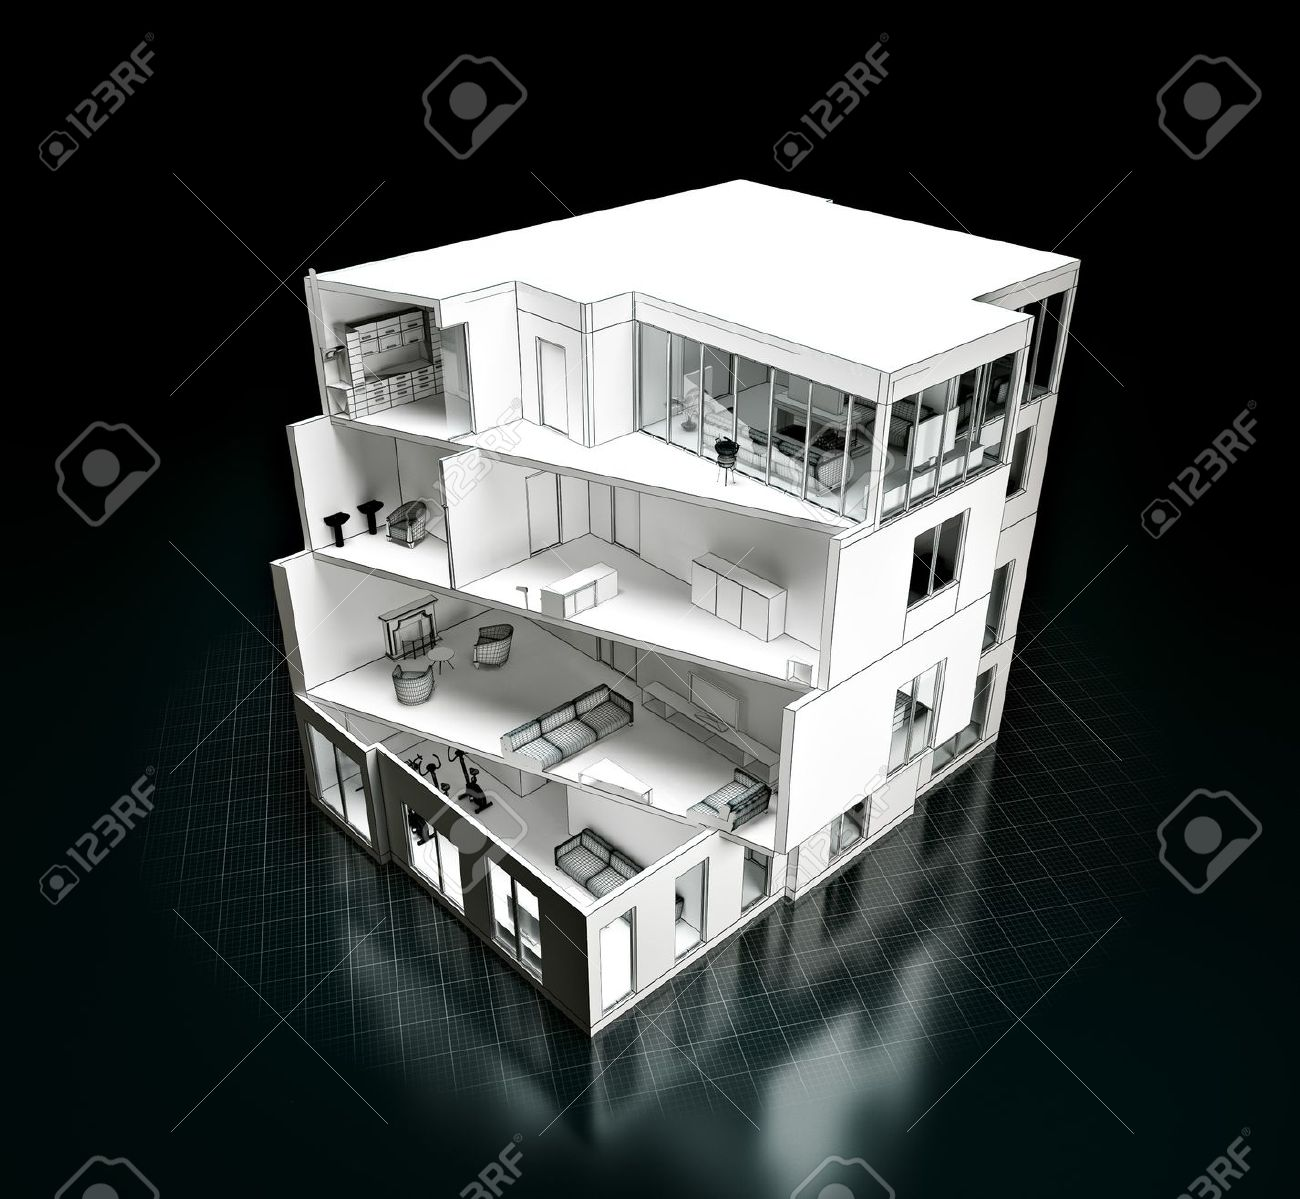 3d Rendering Of A House Project Model In A Cut Architecture